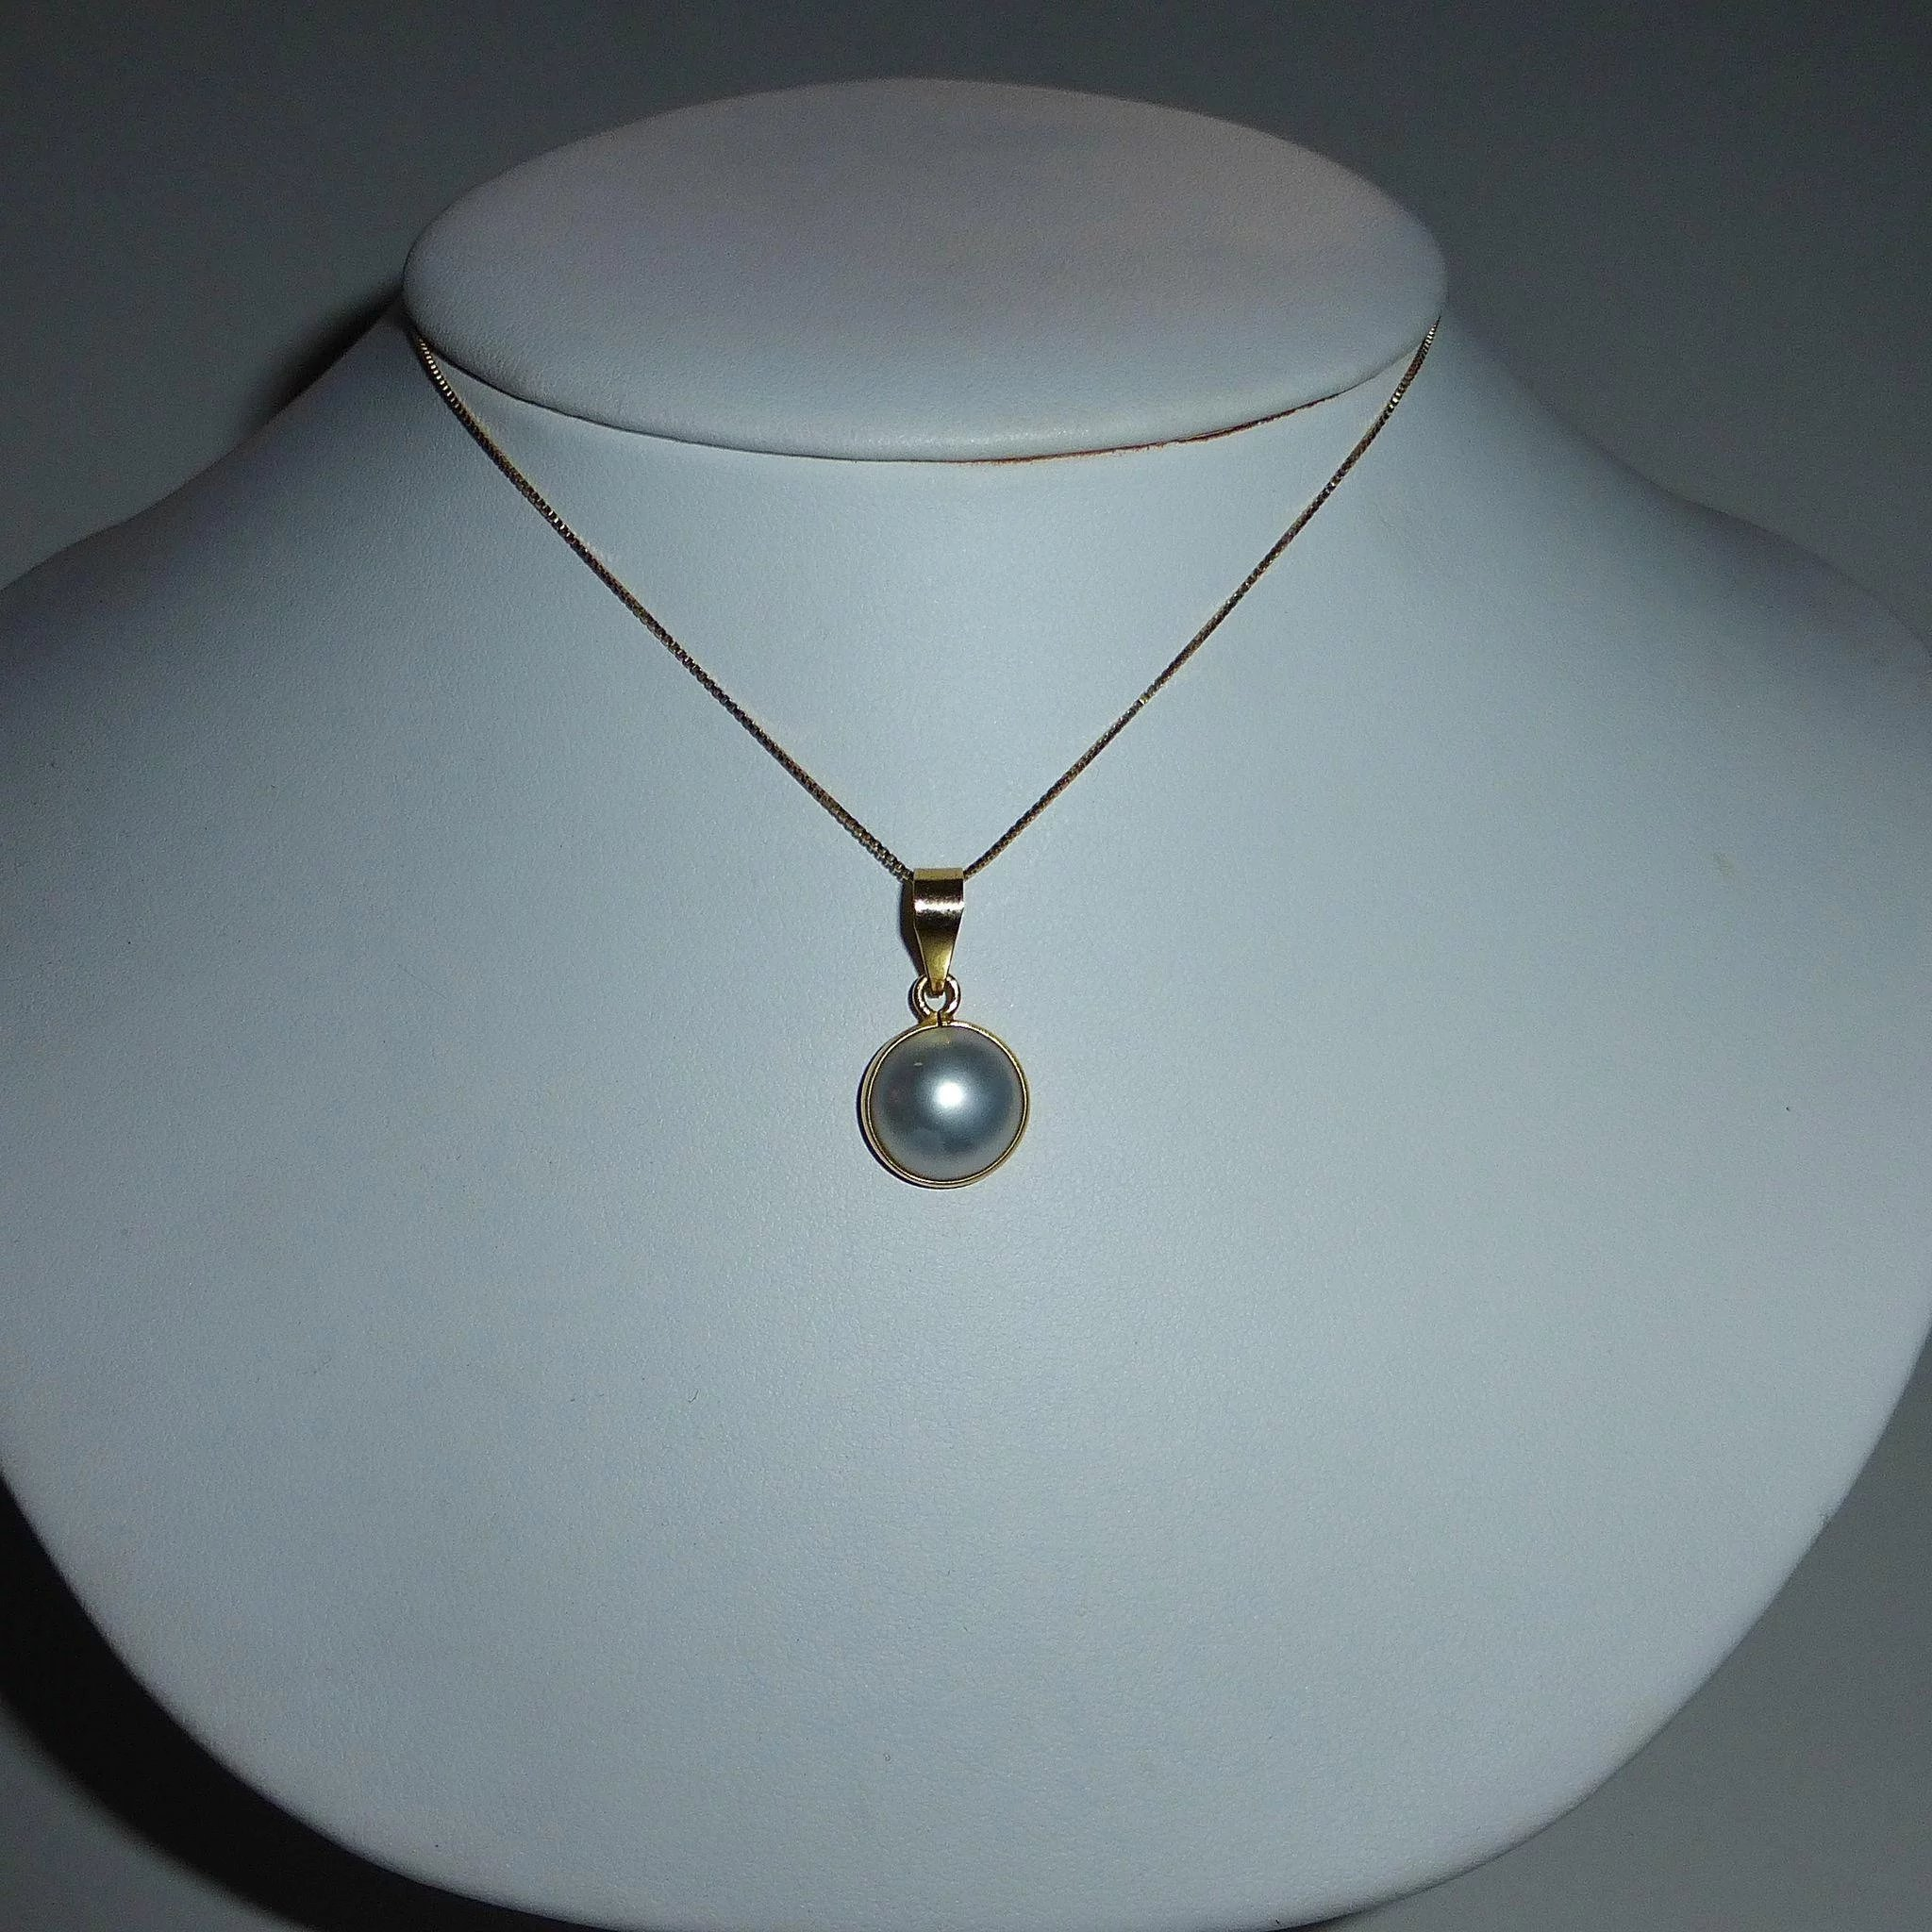 w jewelry pendant pearl akoya products tags slash mikimoto enlarged necklace cultured necklaces